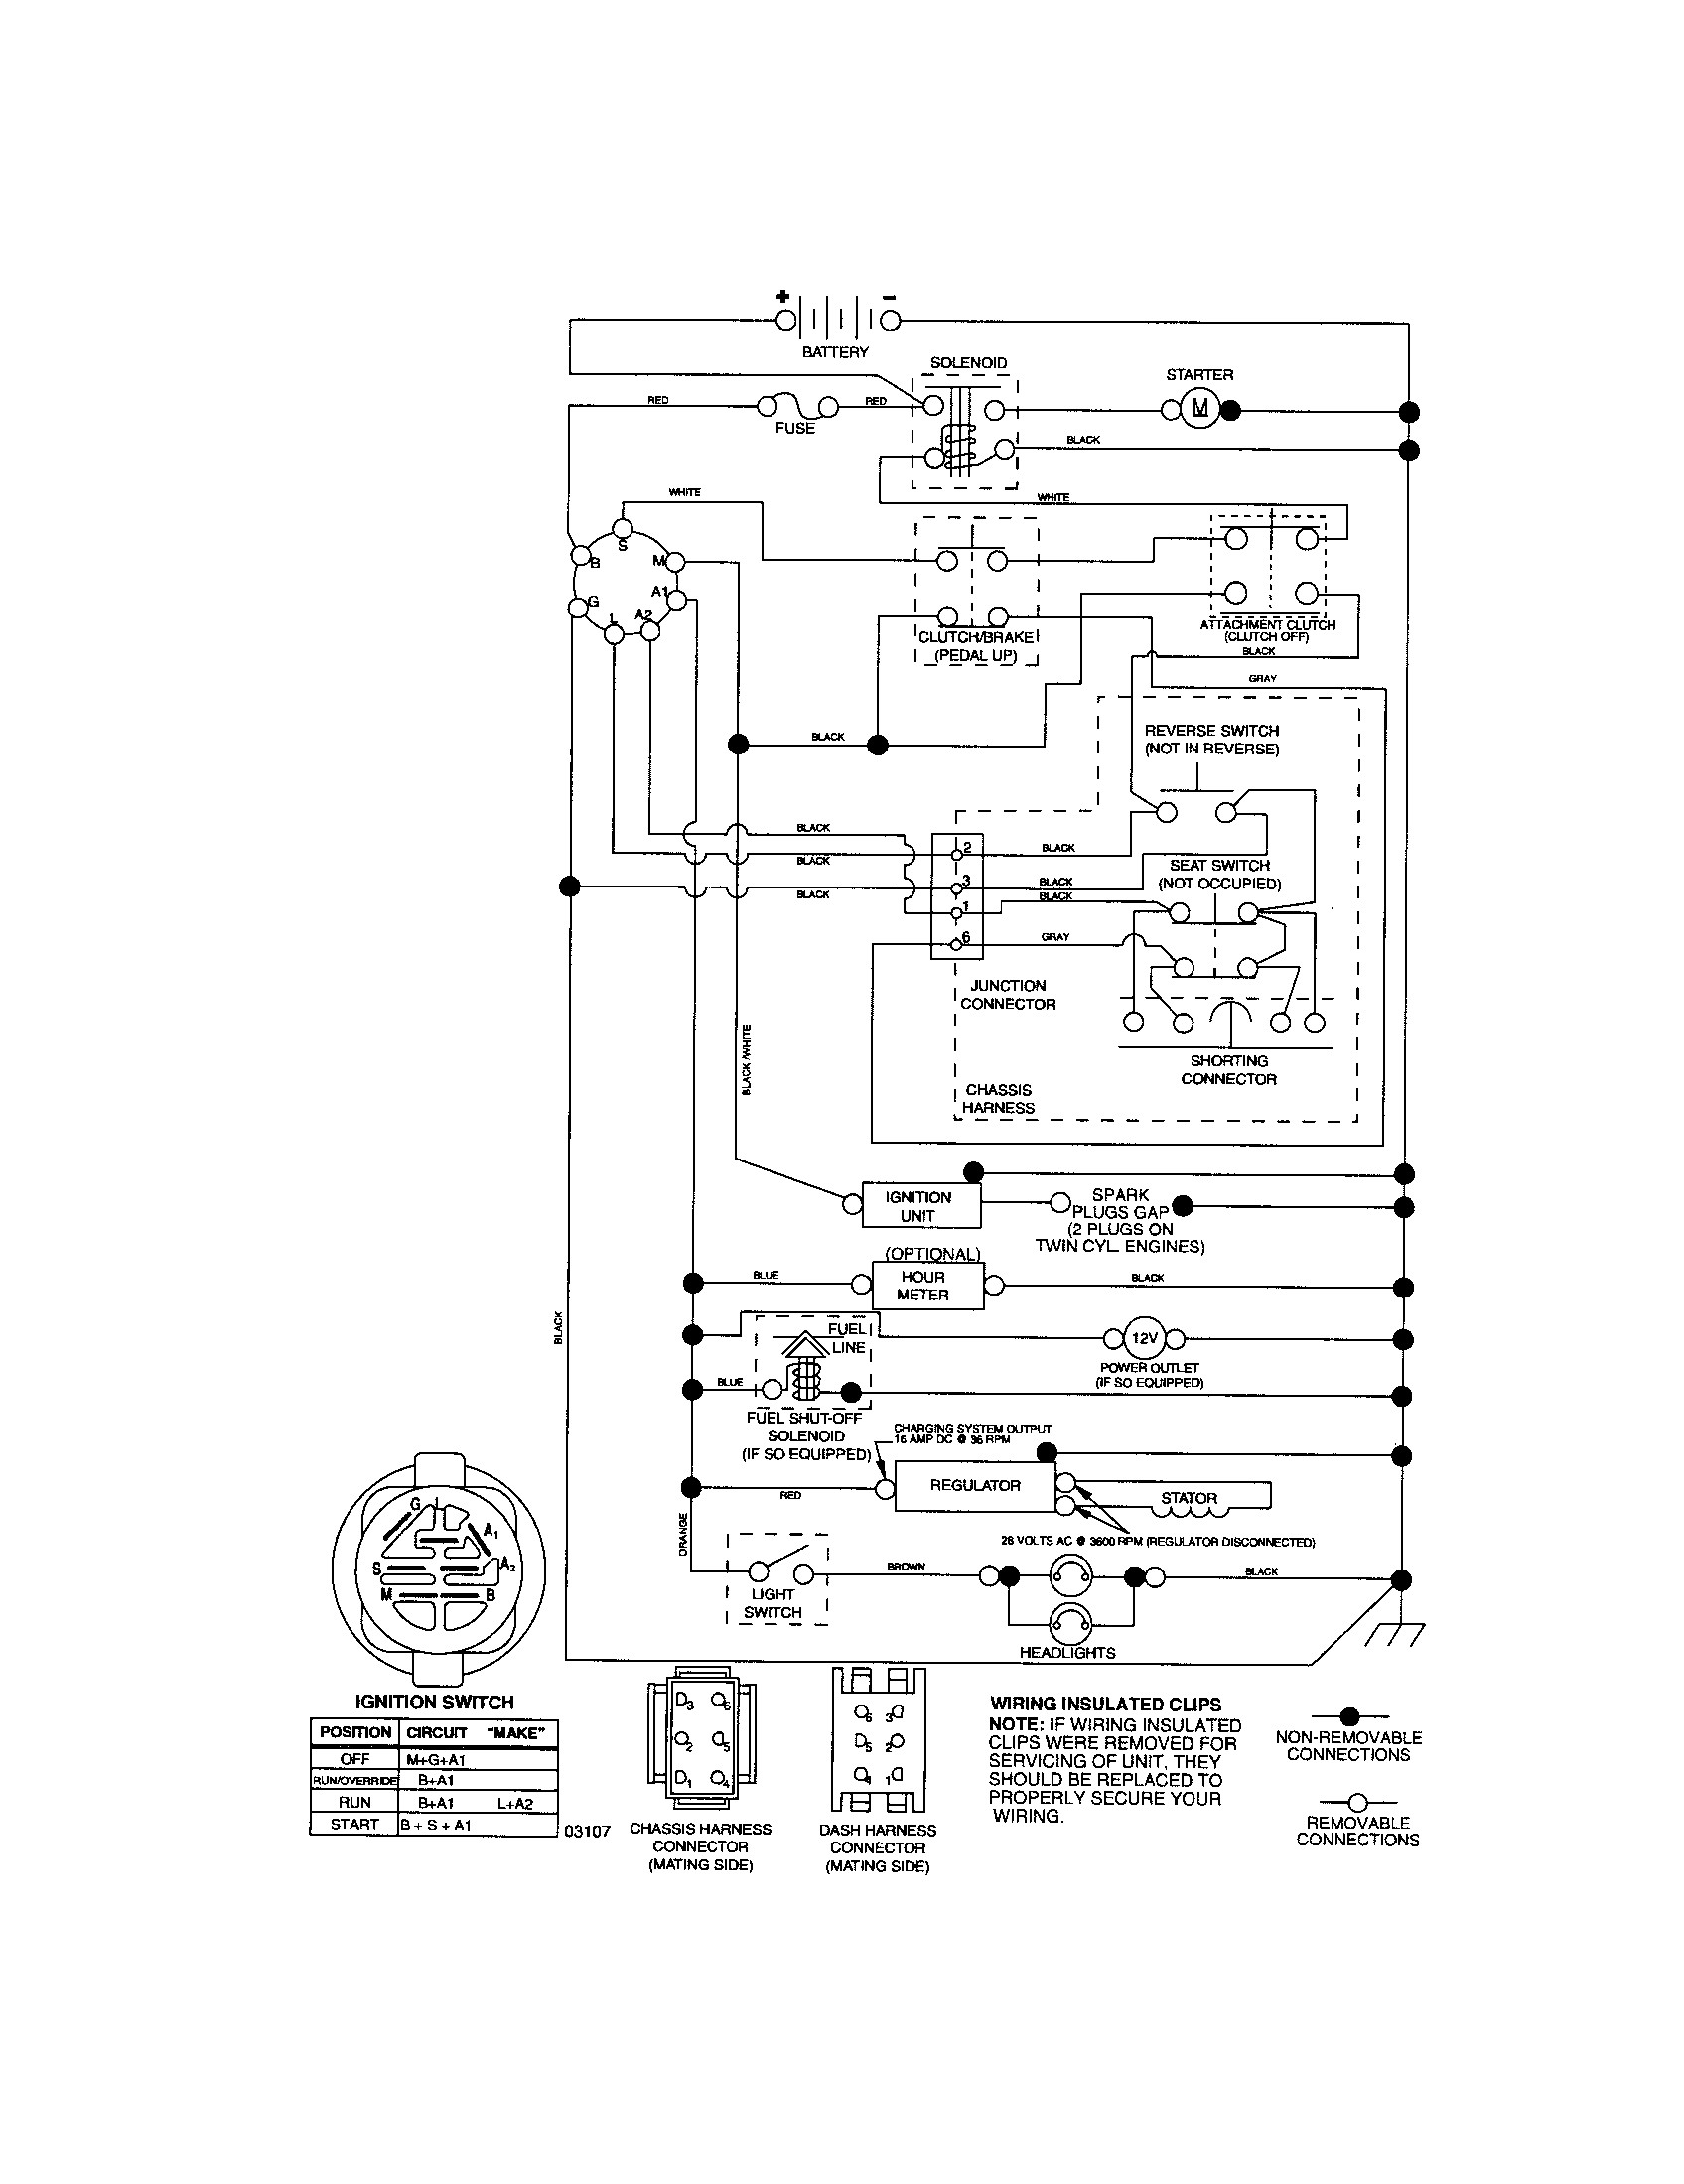 John Deere L130 Clutch Wiring Diagram